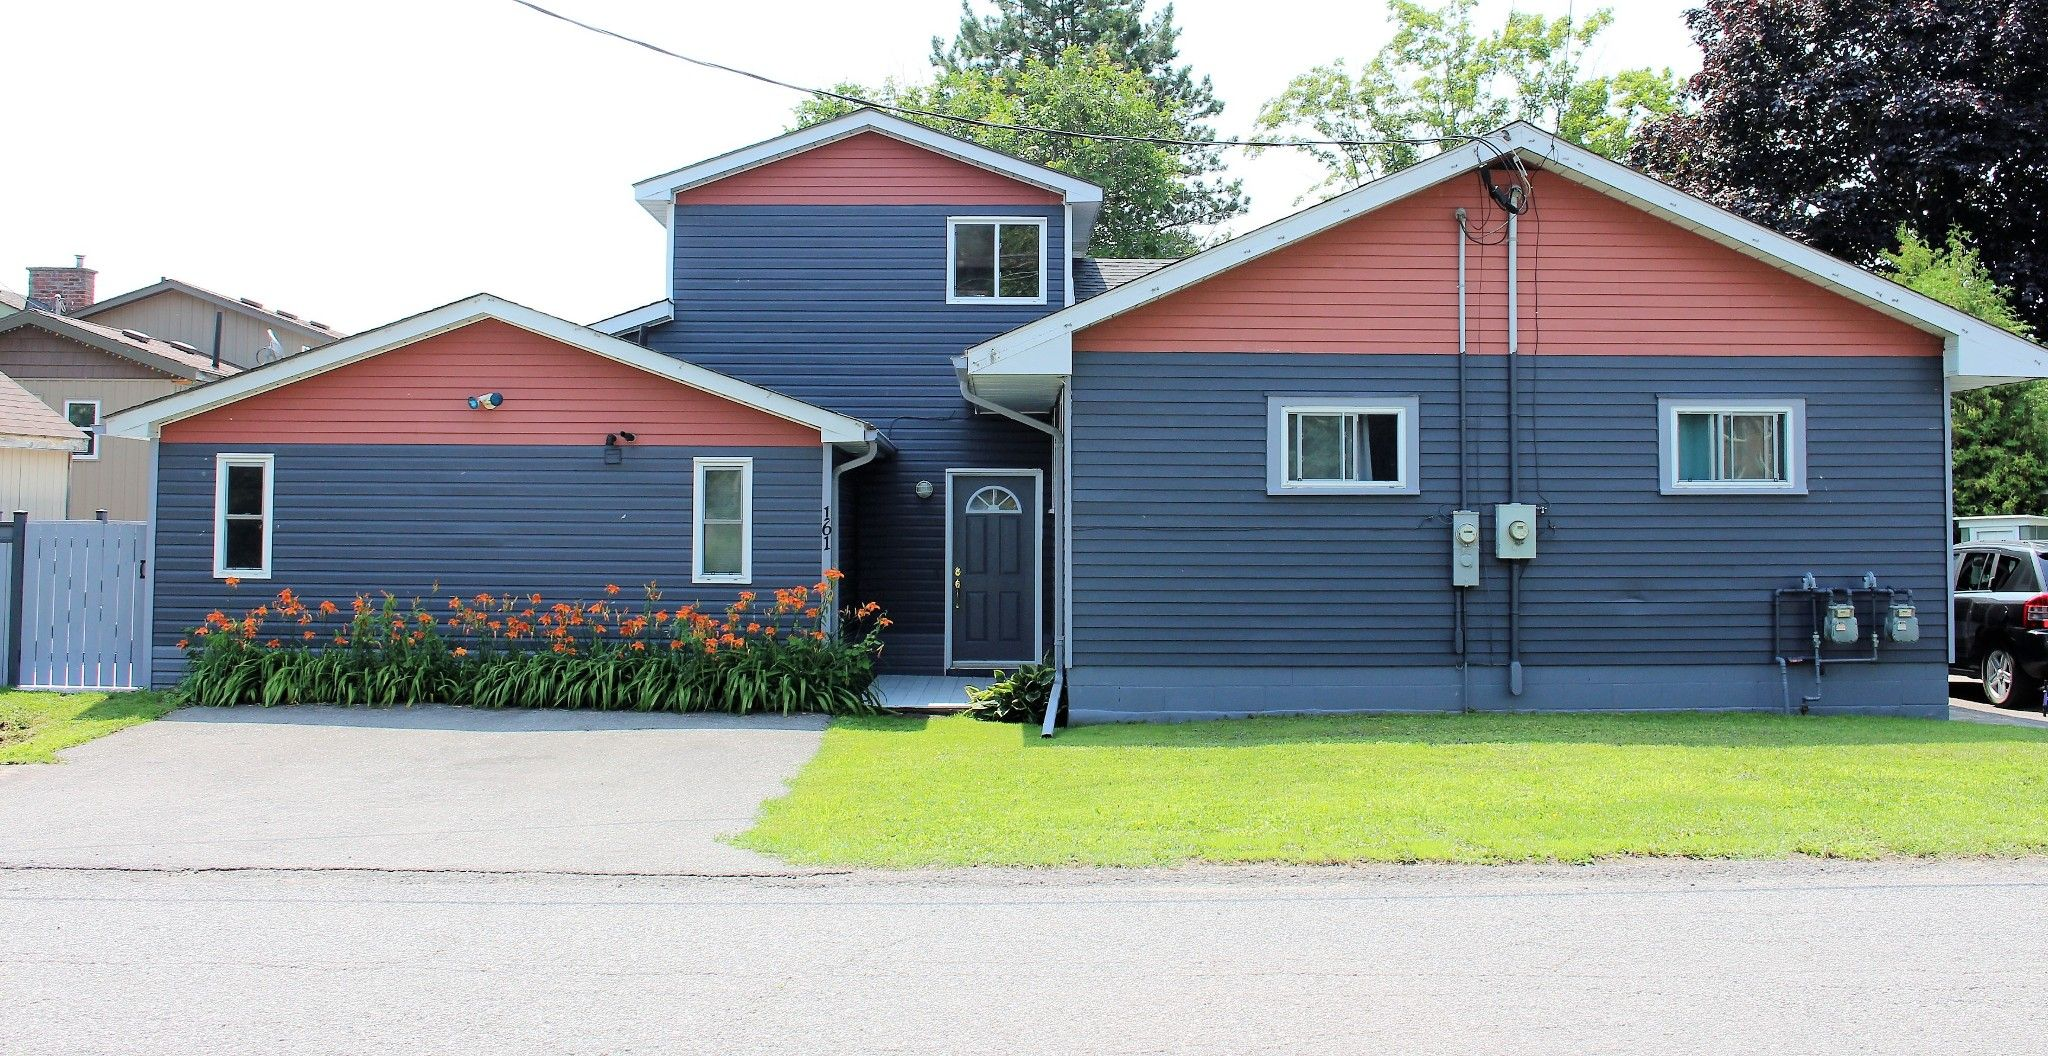 Main Photo: 161 Harbour Street in Brighton: House for sale : MLS®# X5312016